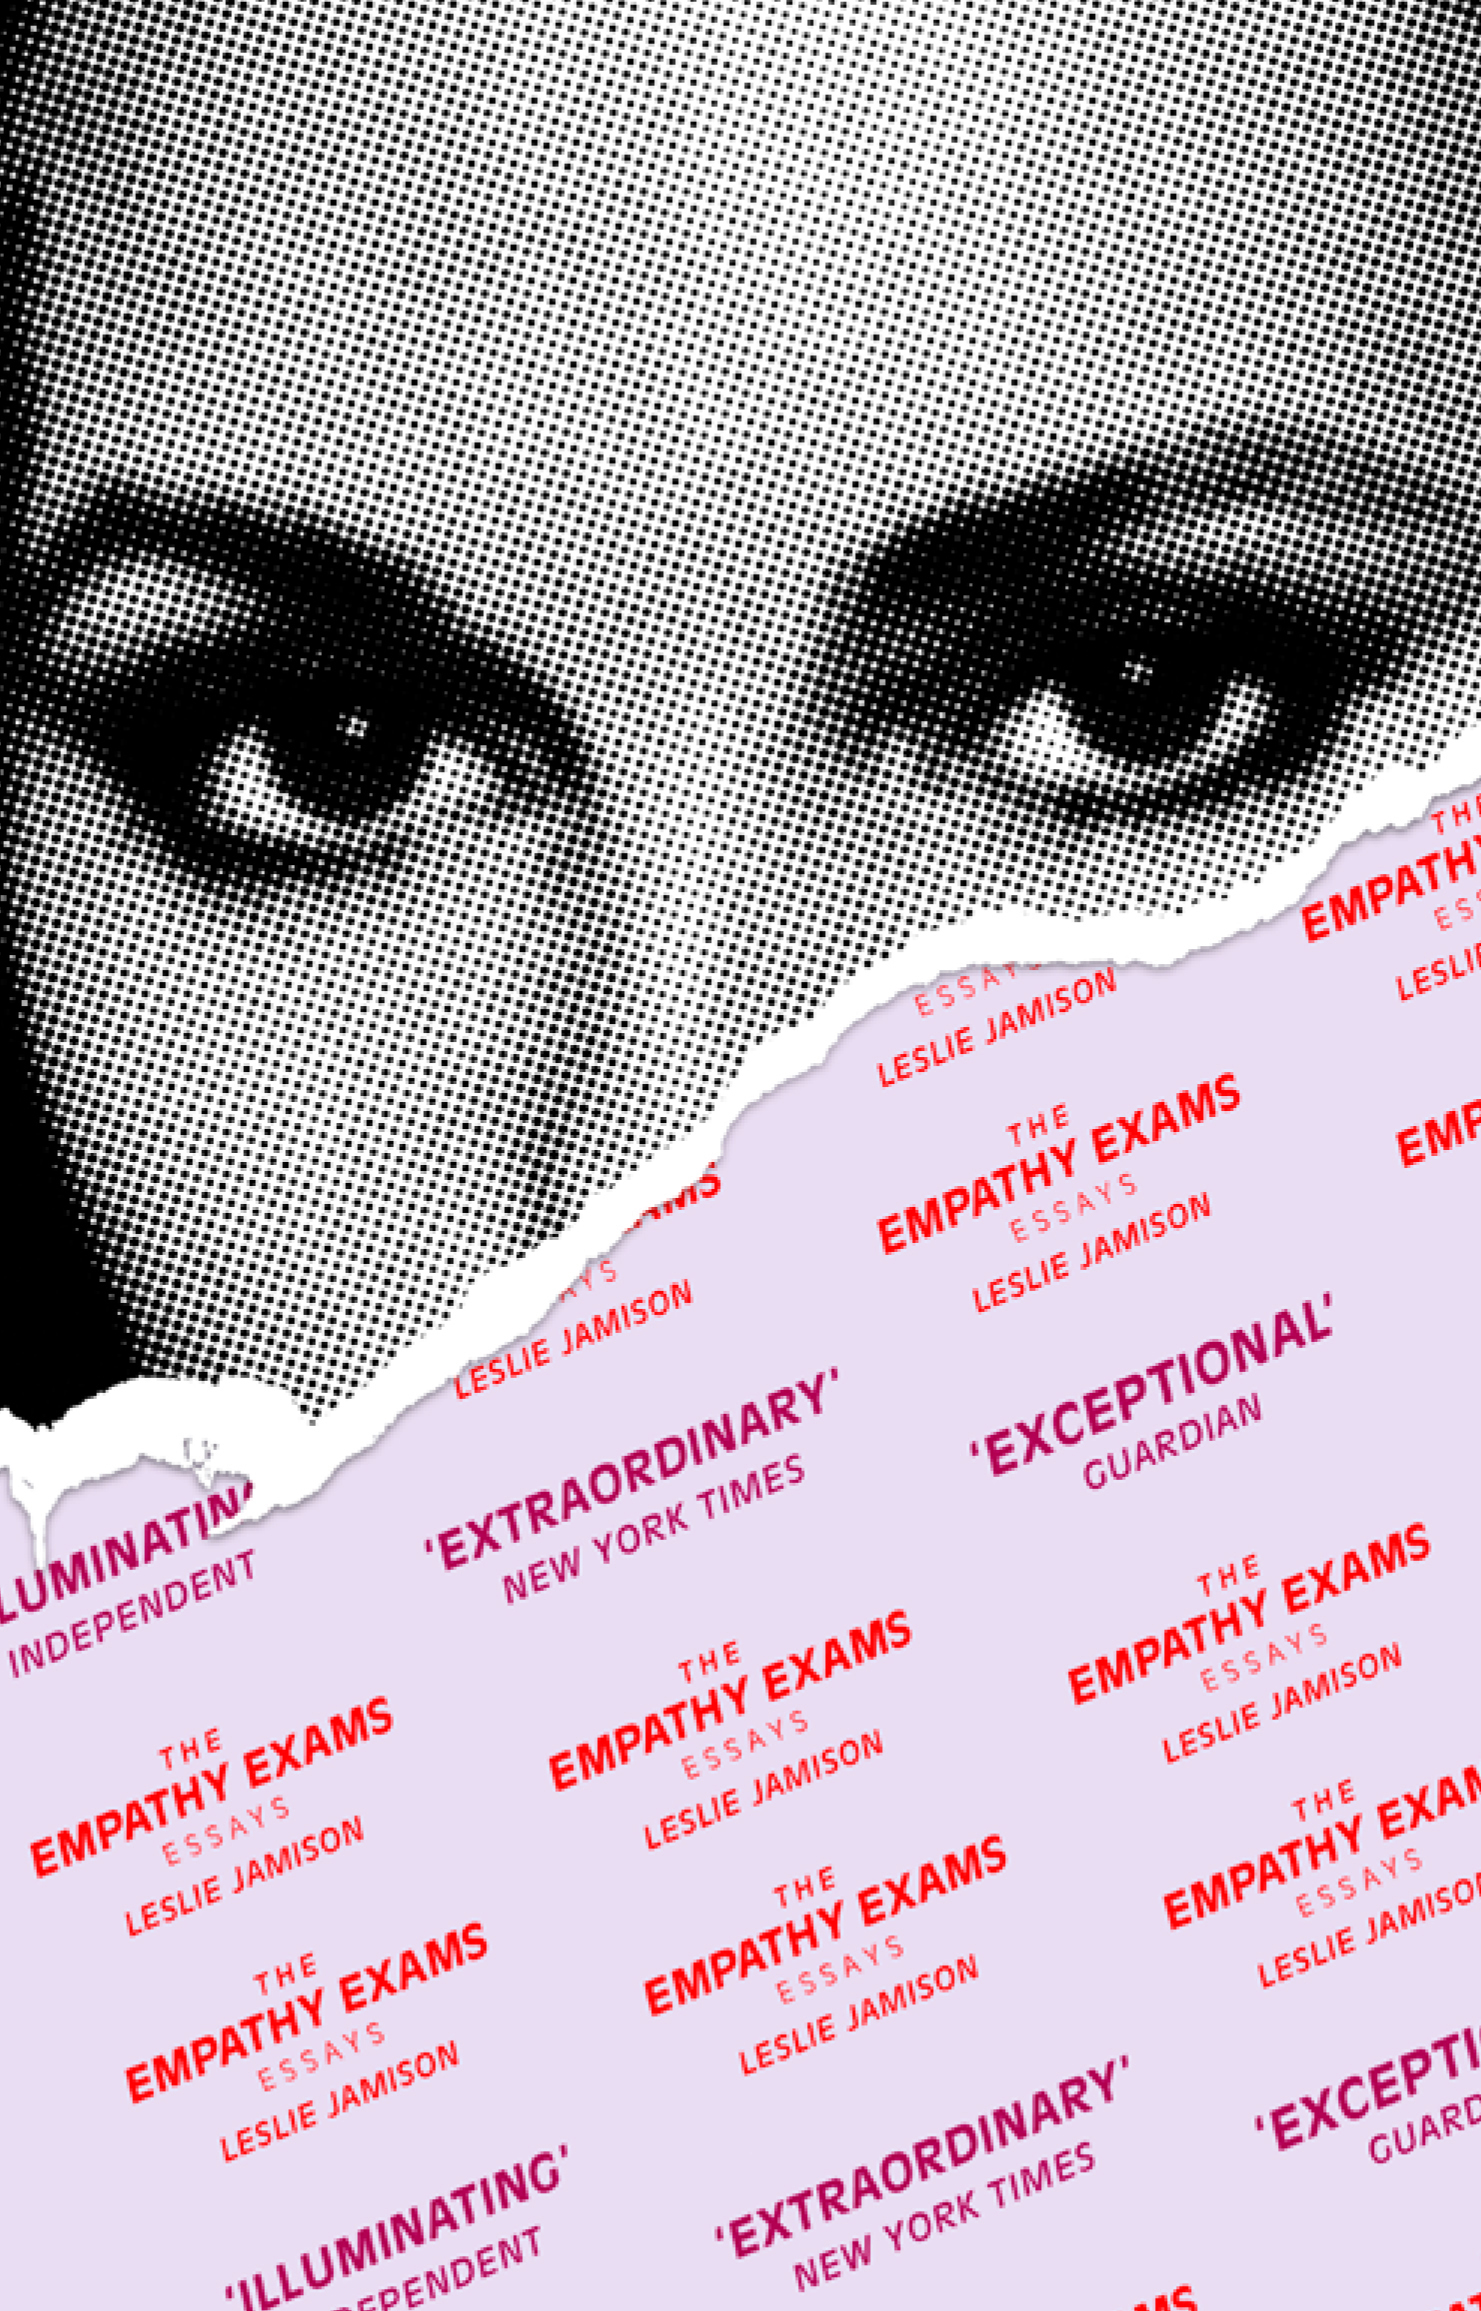 """the empathy exams essays leslie jamison Leslie jamison ob-gyn  """"the empathy exams"""" is the title essay of her second book,  the believer and its contributors."""